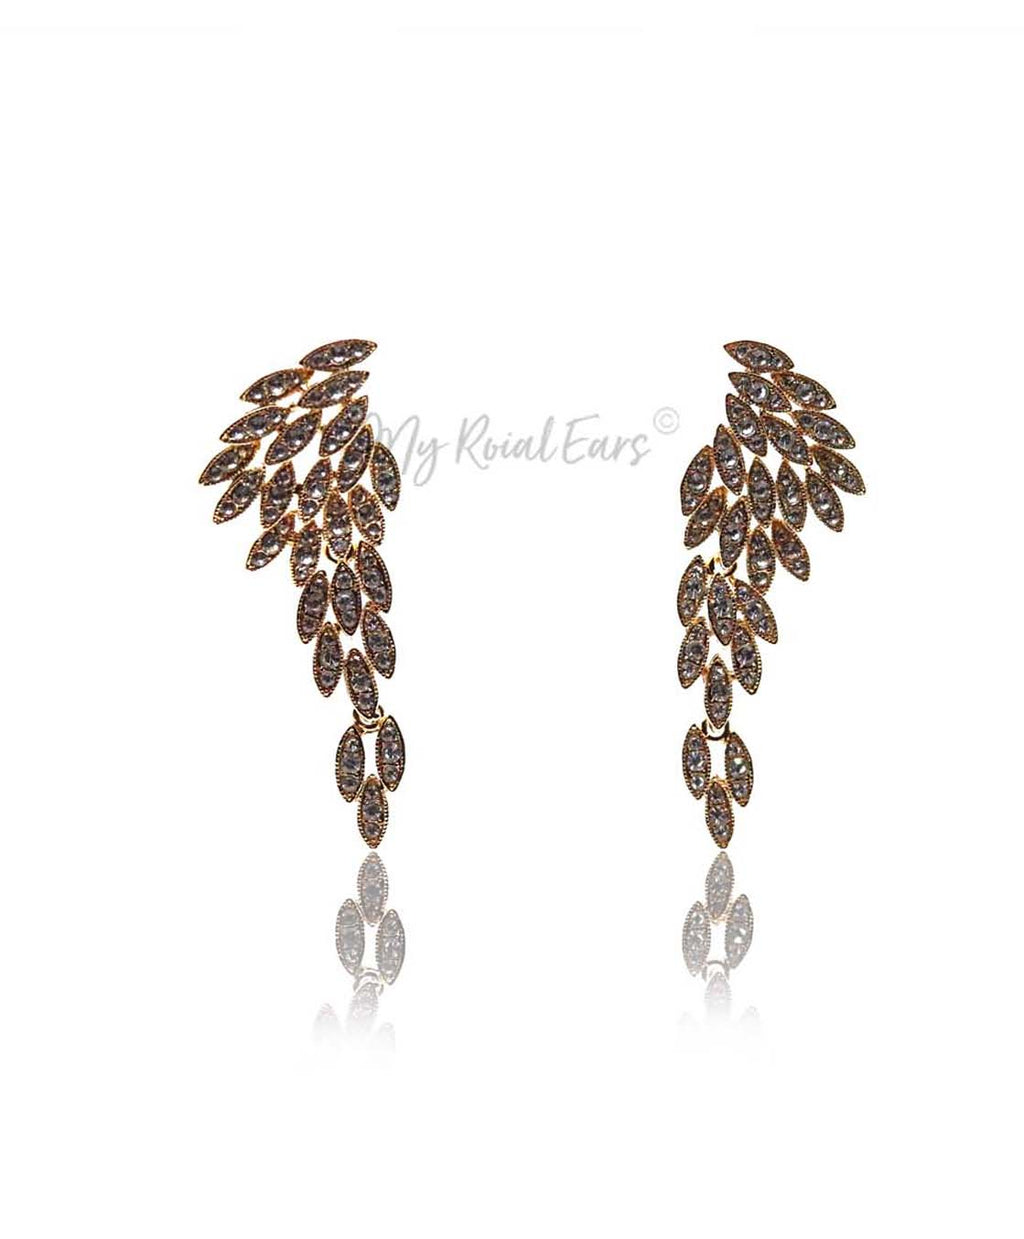 Q.Rosemary-luxury remarkable drop statement bridal earrings - My Roial Ears LTD